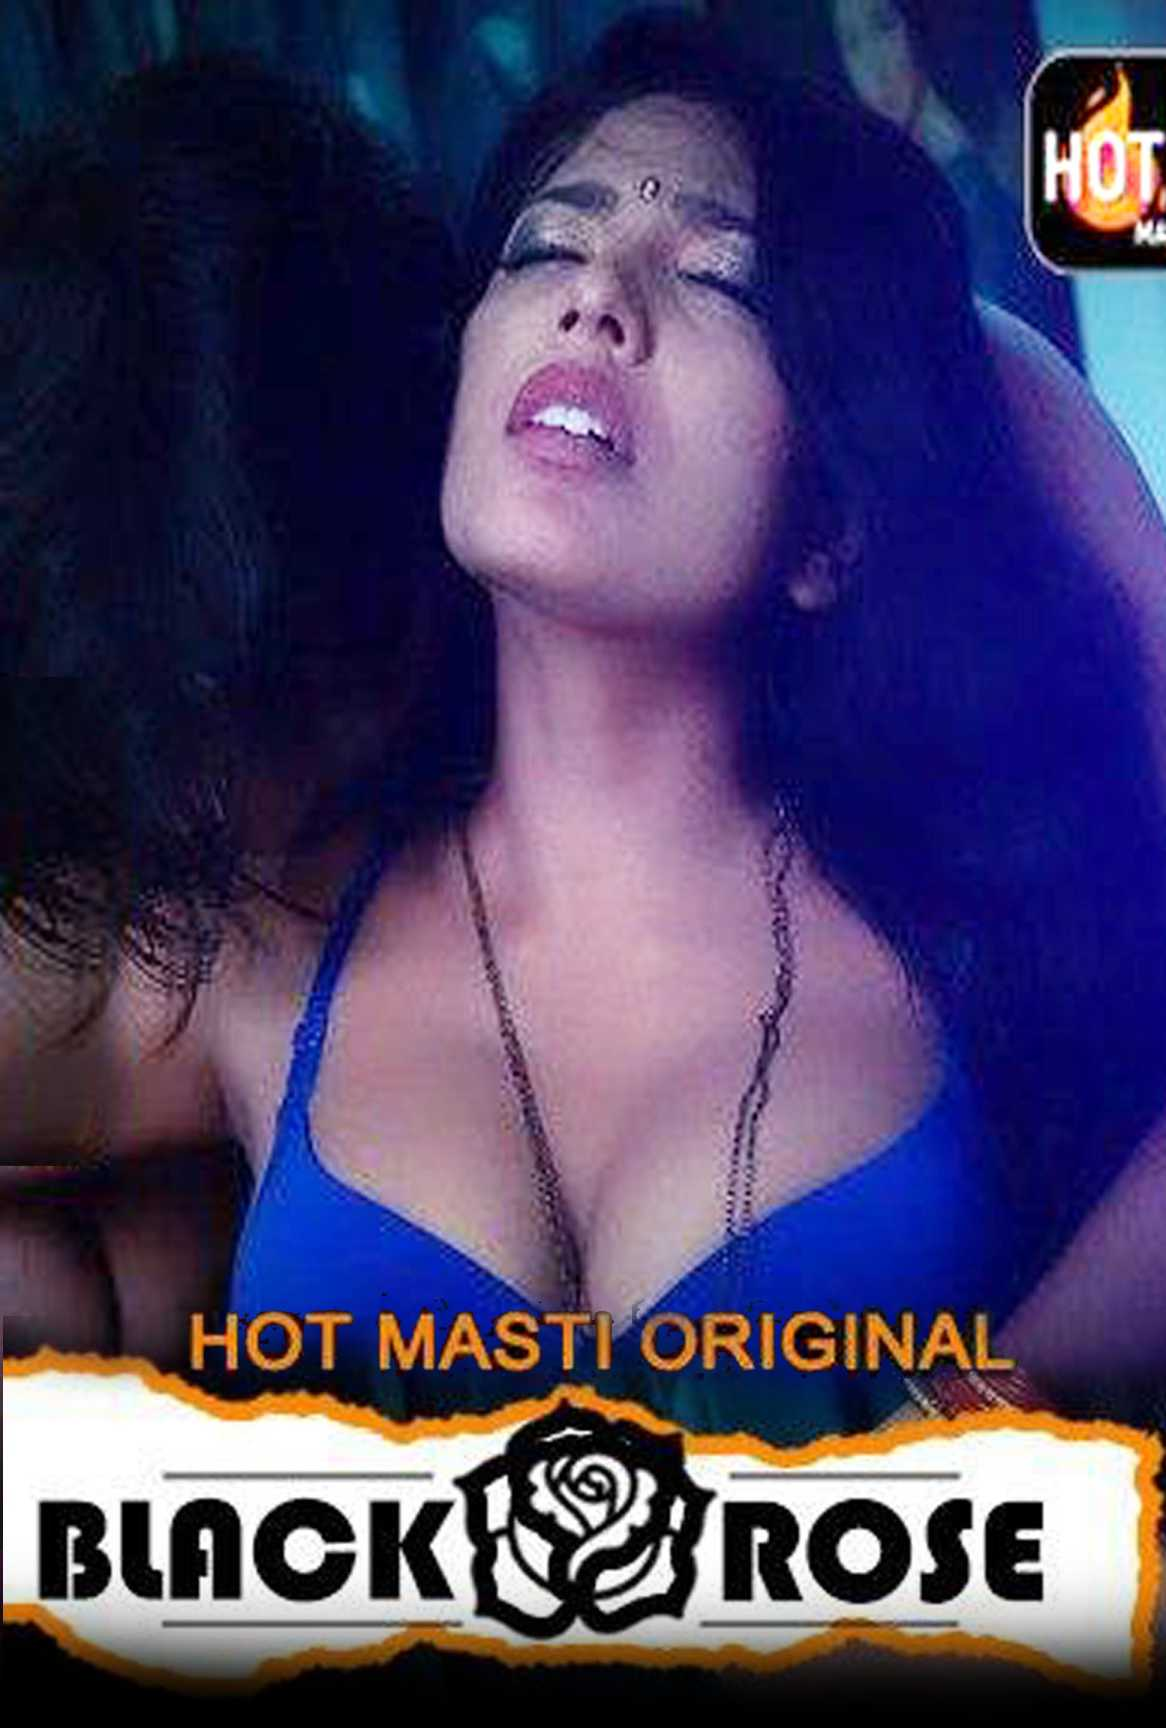 Black Rose S01E02 2020 Hindi HotMasti Original Web Series 720p HDRip 166MB Download